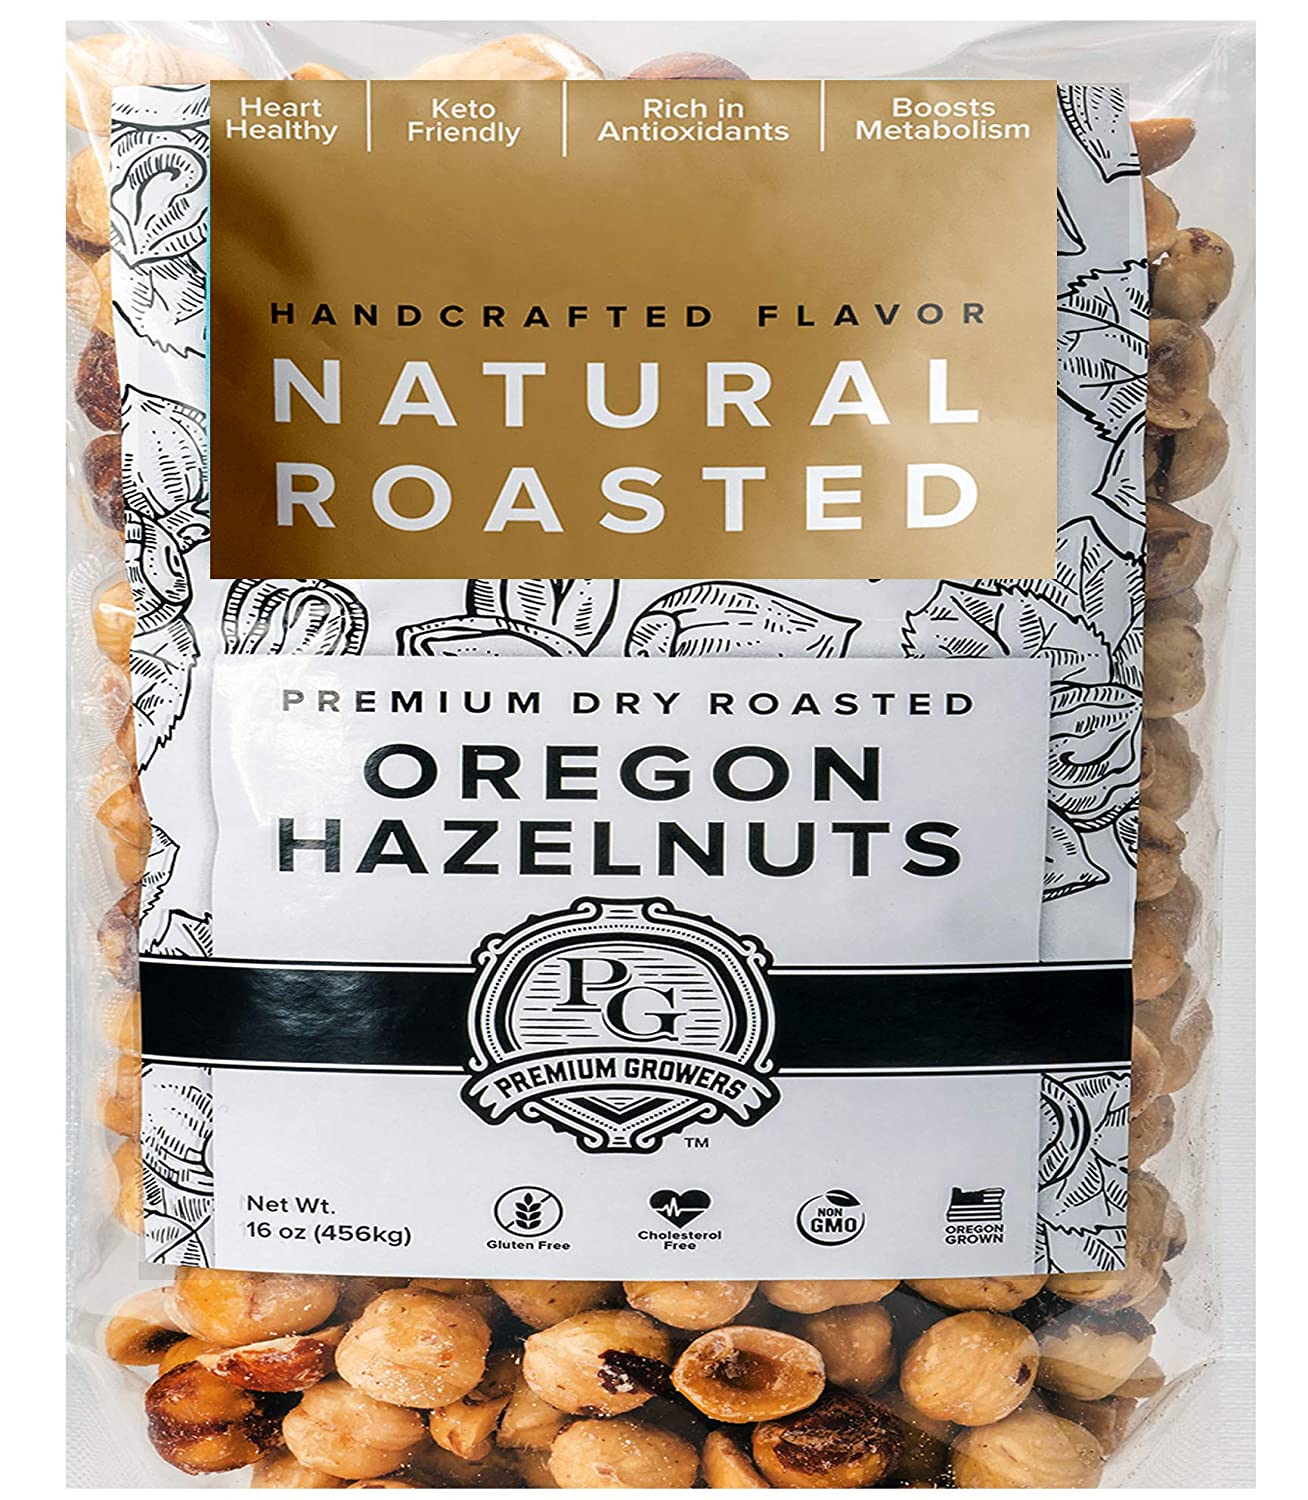 Oregon Farm To Table Hazelnuts from Premium Growers - Dry Roasted - Natural Roasted – 1 LB bag